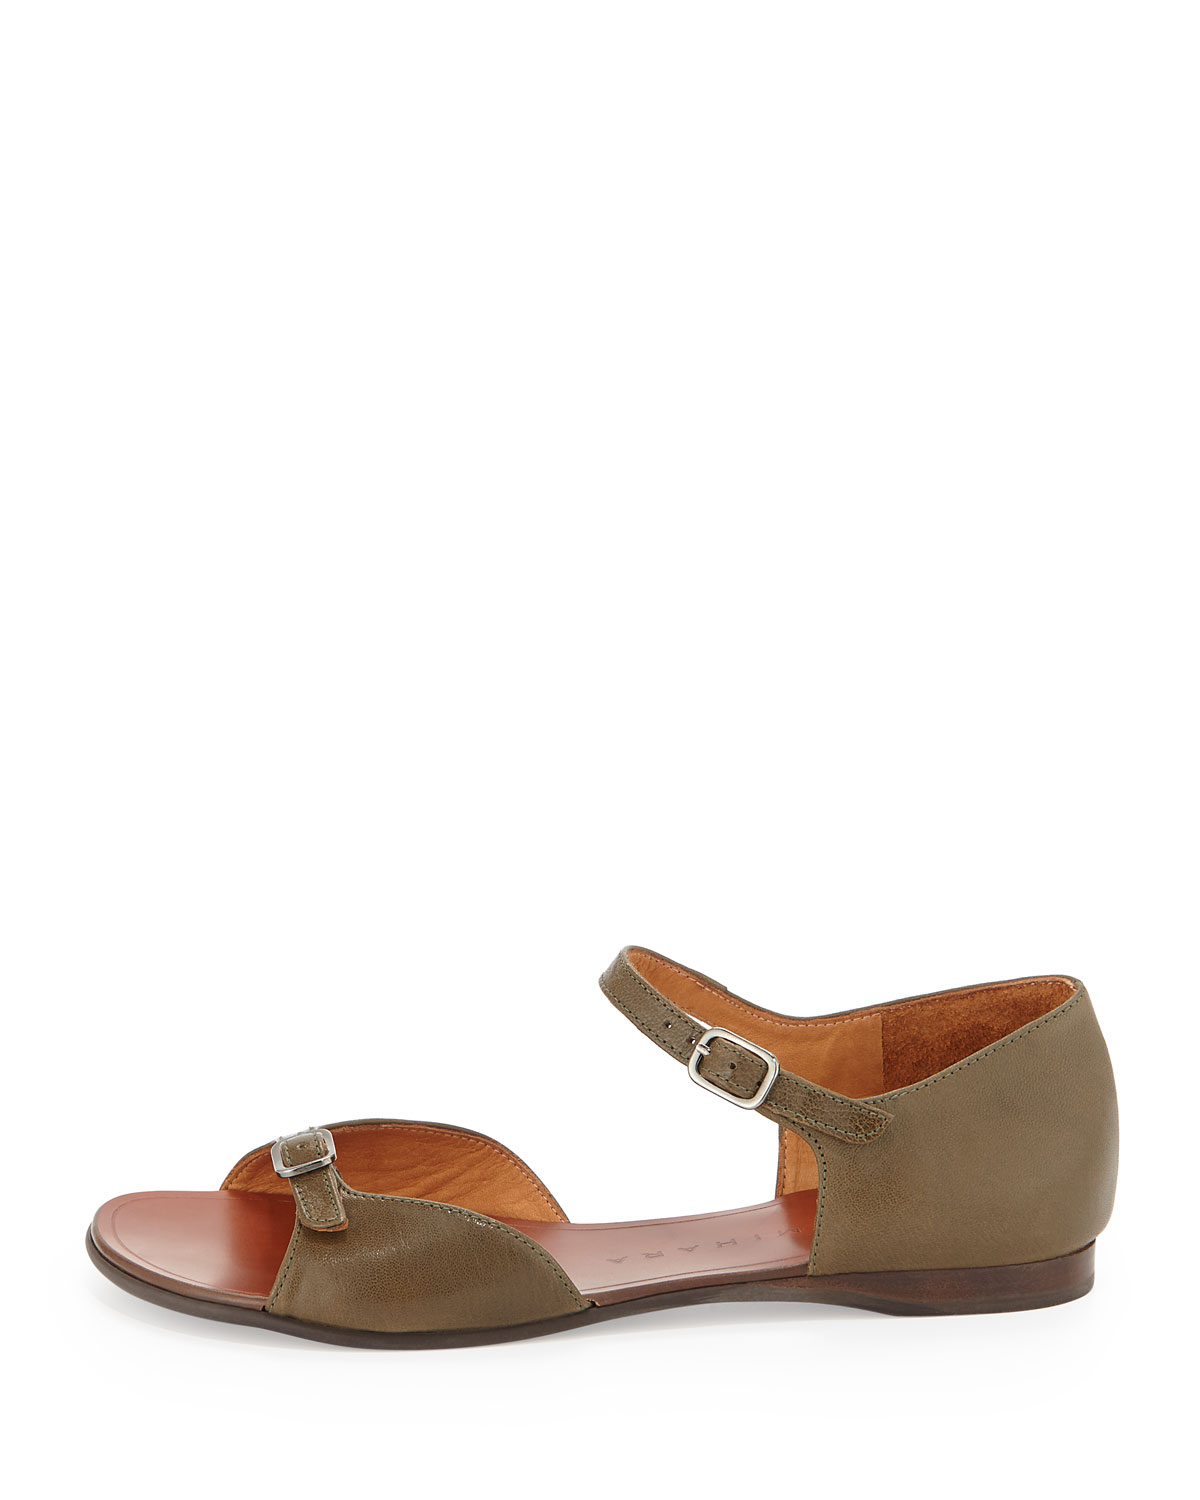 Chie mihara Endless Buckled Flat Sandal in Natural